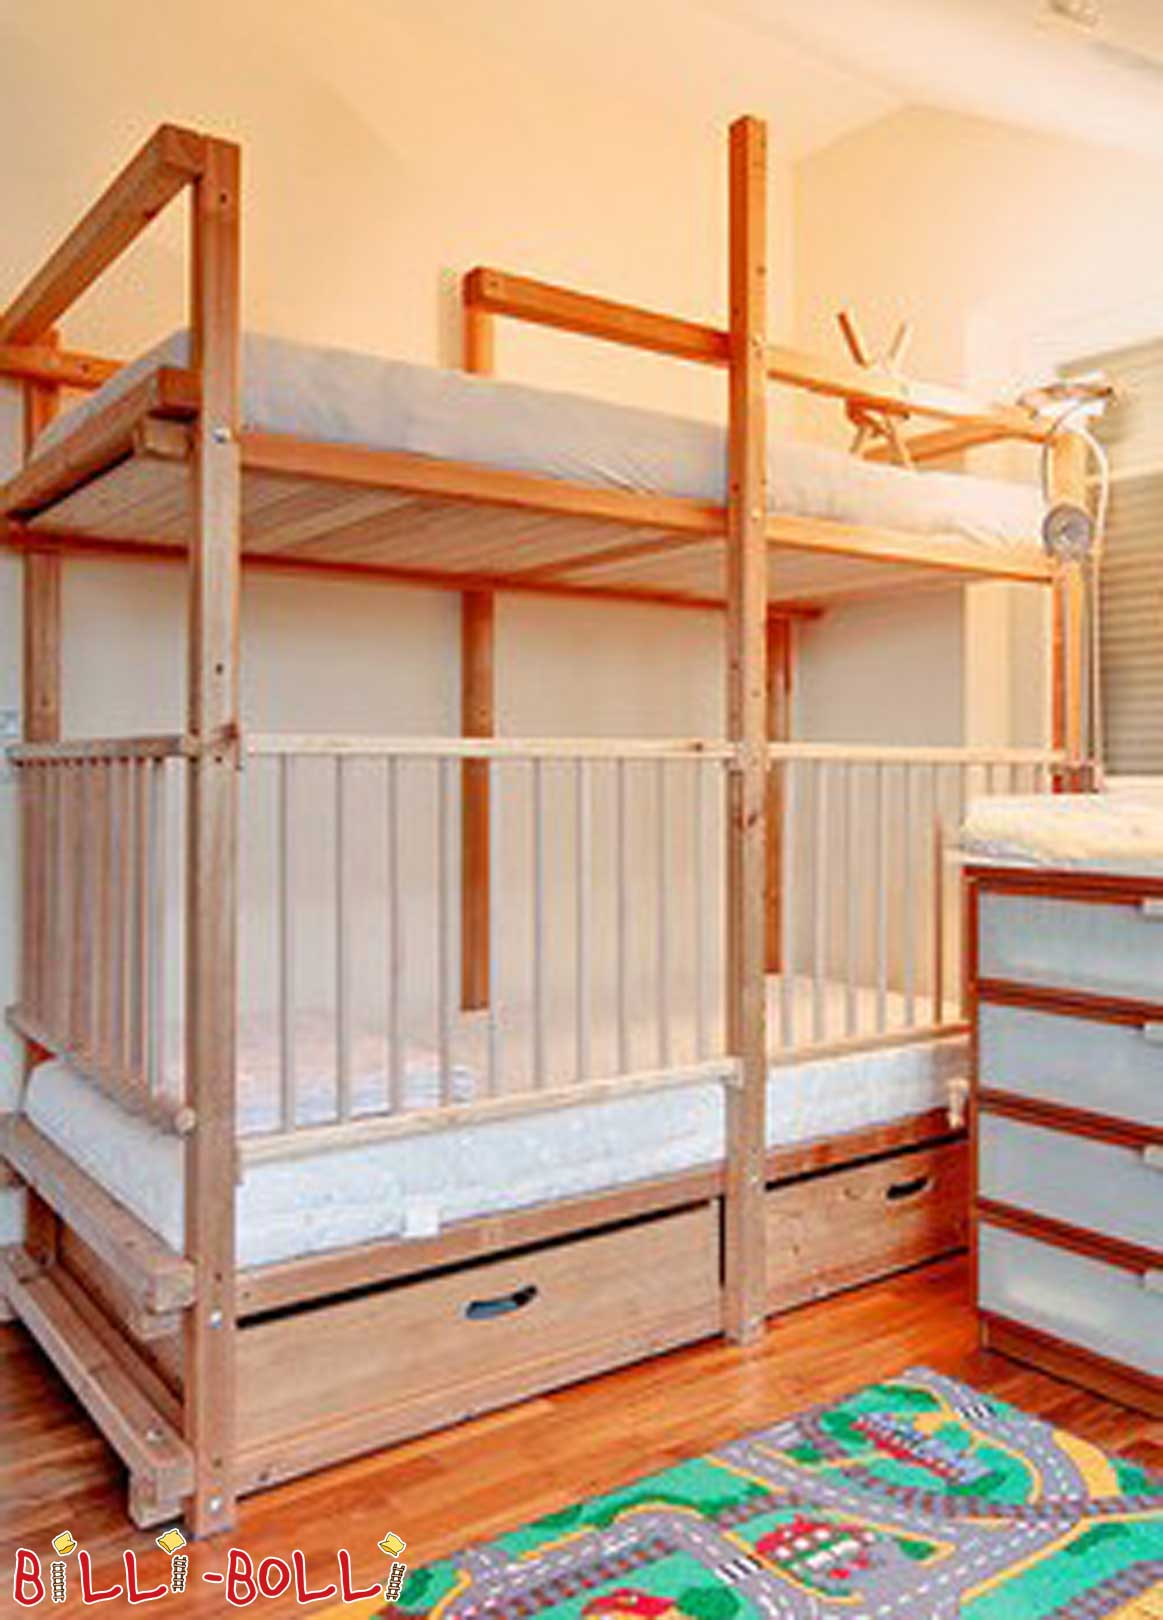 Bunk bed of Gullibo (second hand bunk bed)